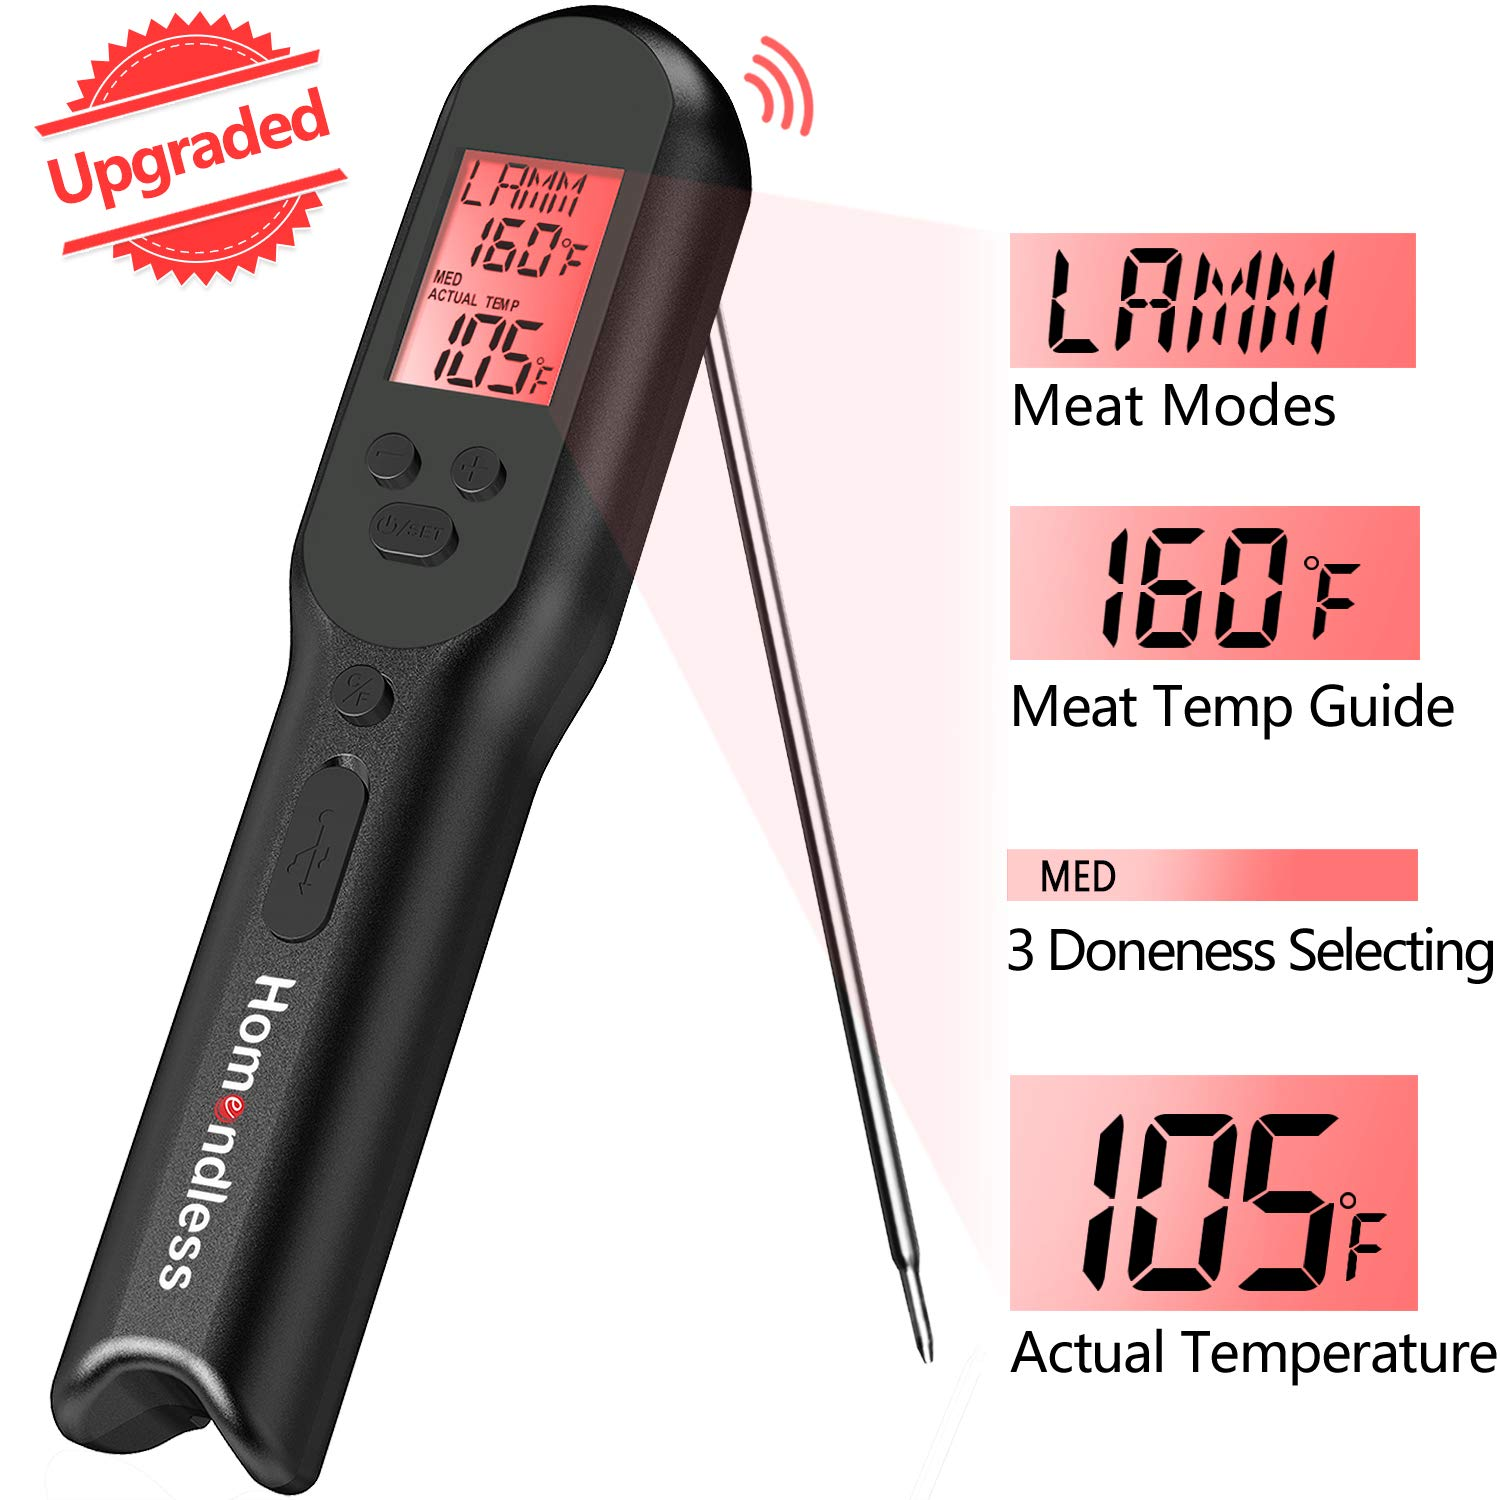 Instant Read Thermometer Digital Meat Thermometer with Rechargeable Battery Built-in Food Temperature, Alarm, LCD Backlight for Kitchen Cooking Candy Grill, IPX7 Waterproof by Homendless